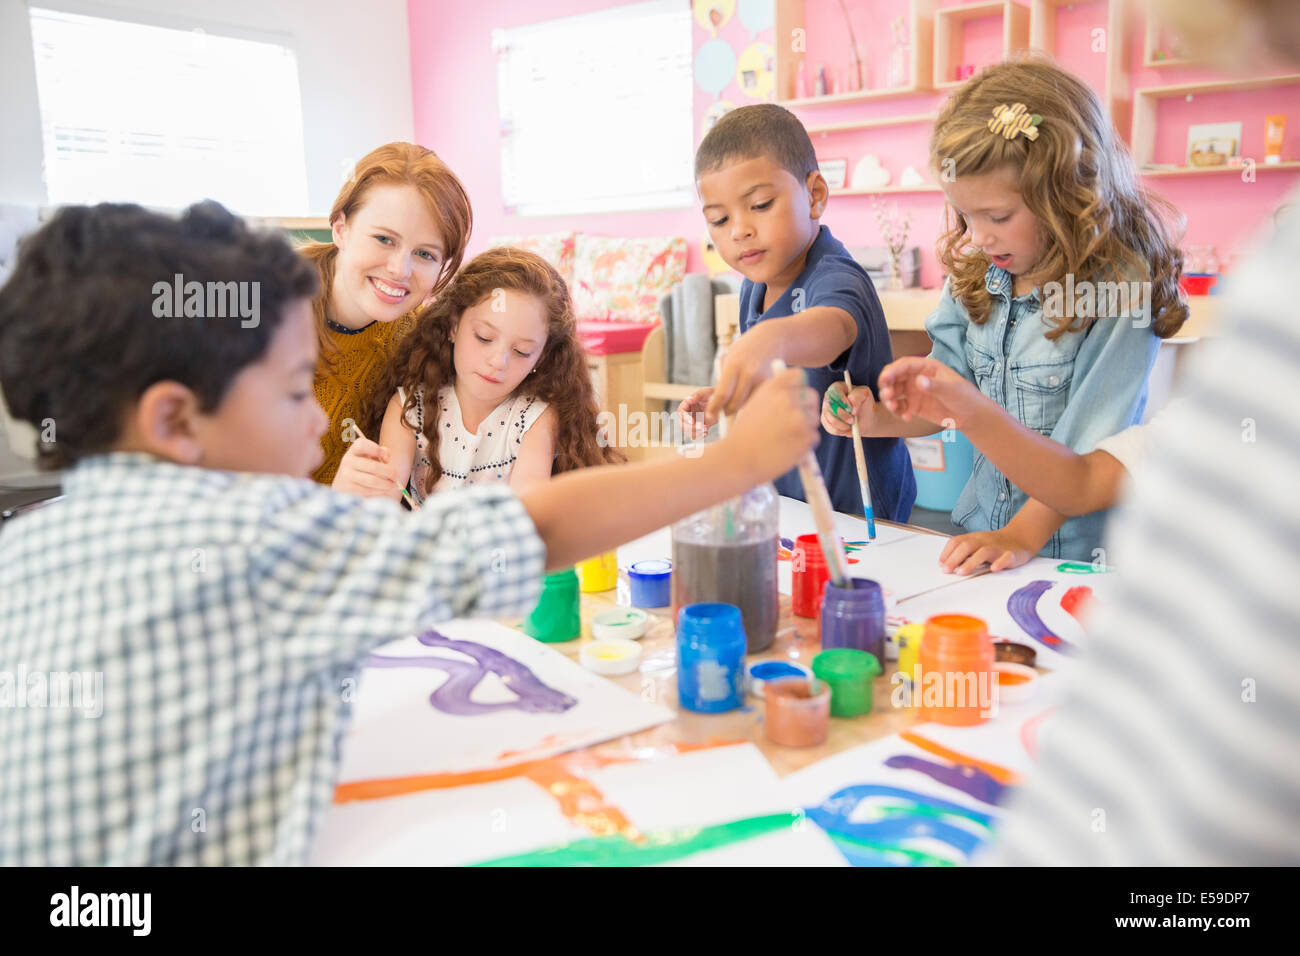 Students painting in class - Stock Image